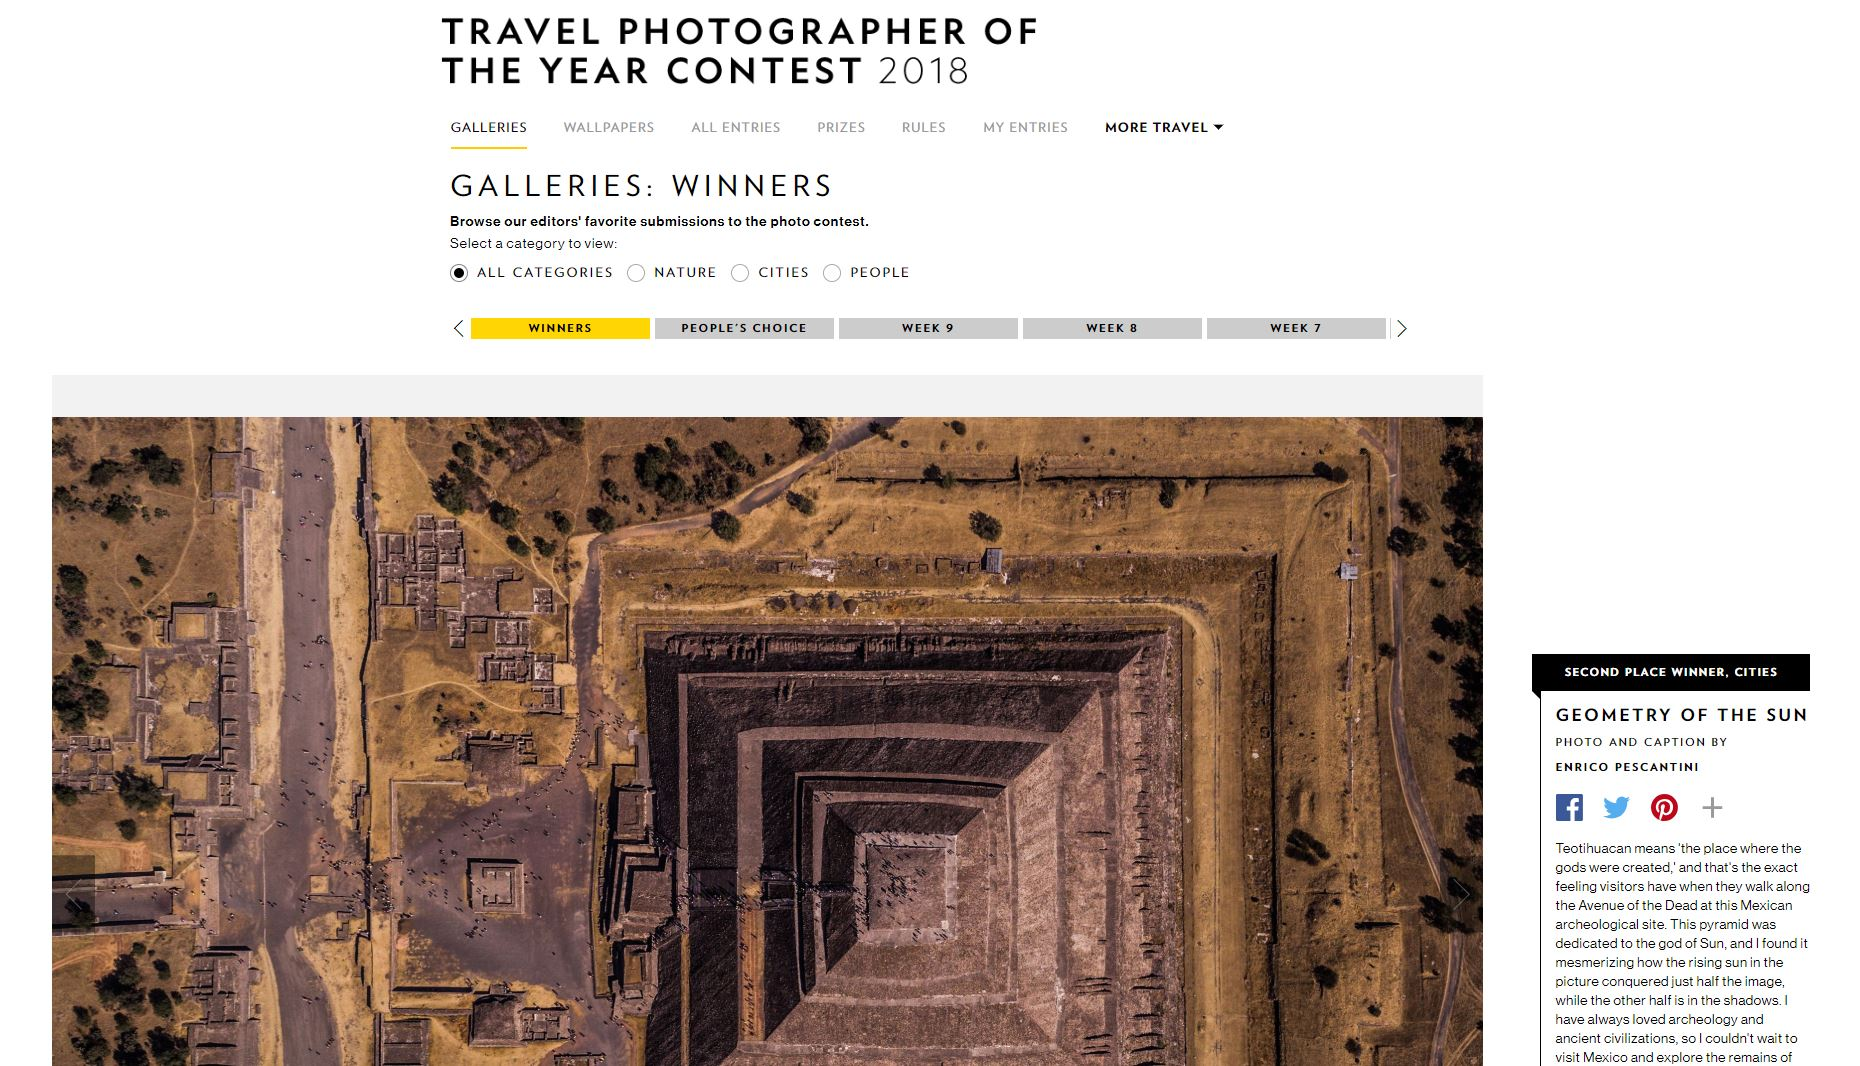 National Geographic Travel Photographer of the year 2018 Cities Winner Geometry of the Sun Enrico Pescantini